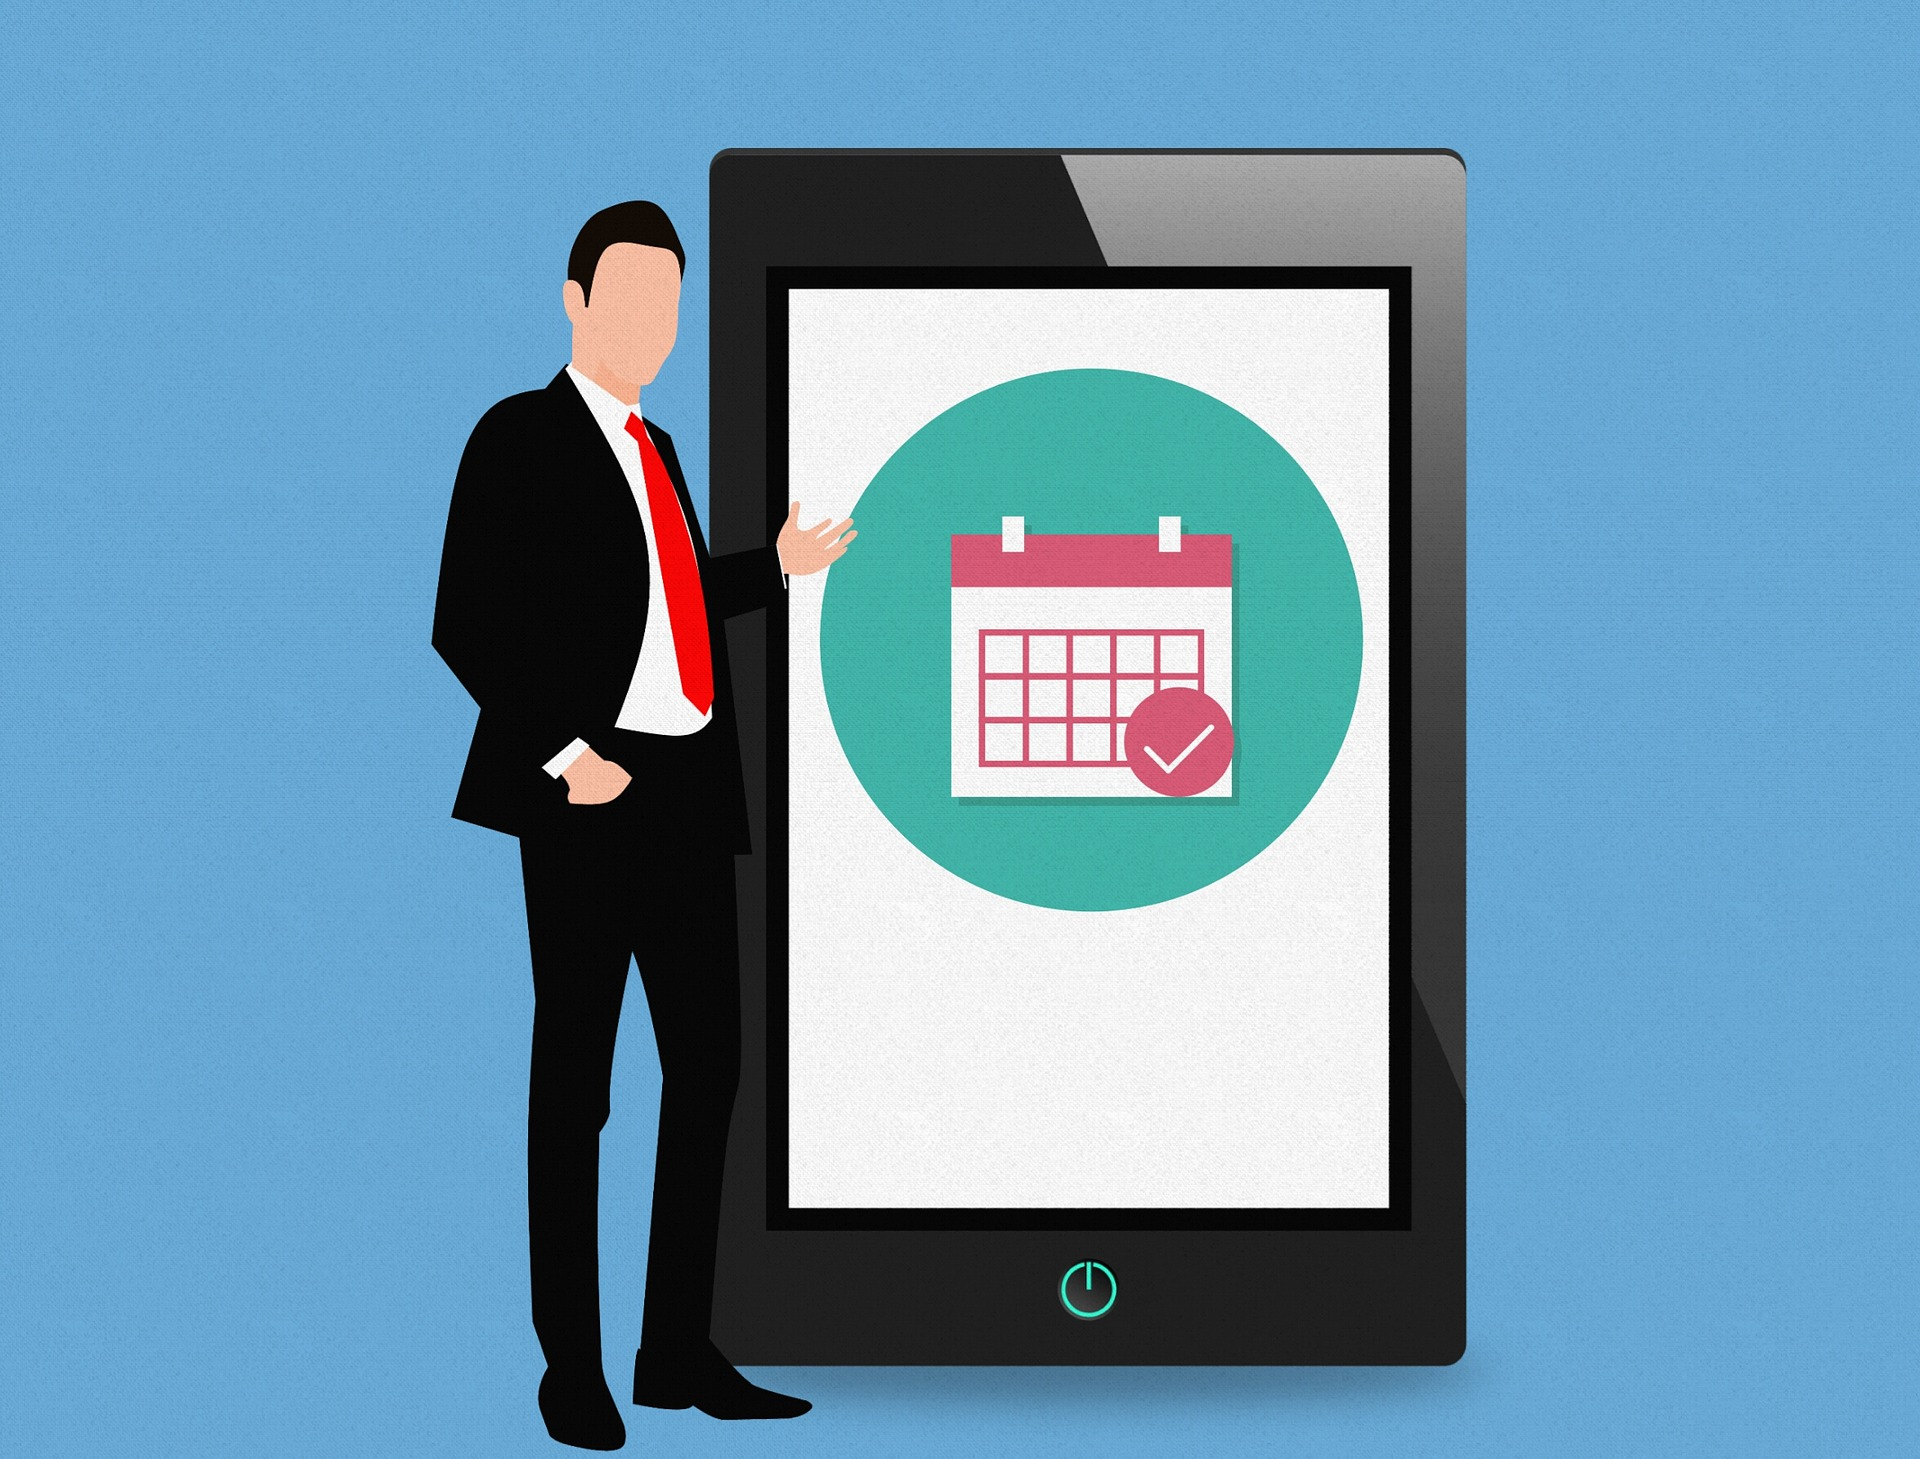 Man in businesssuit standing next to smartphone/tablet with a calendar to show length of time